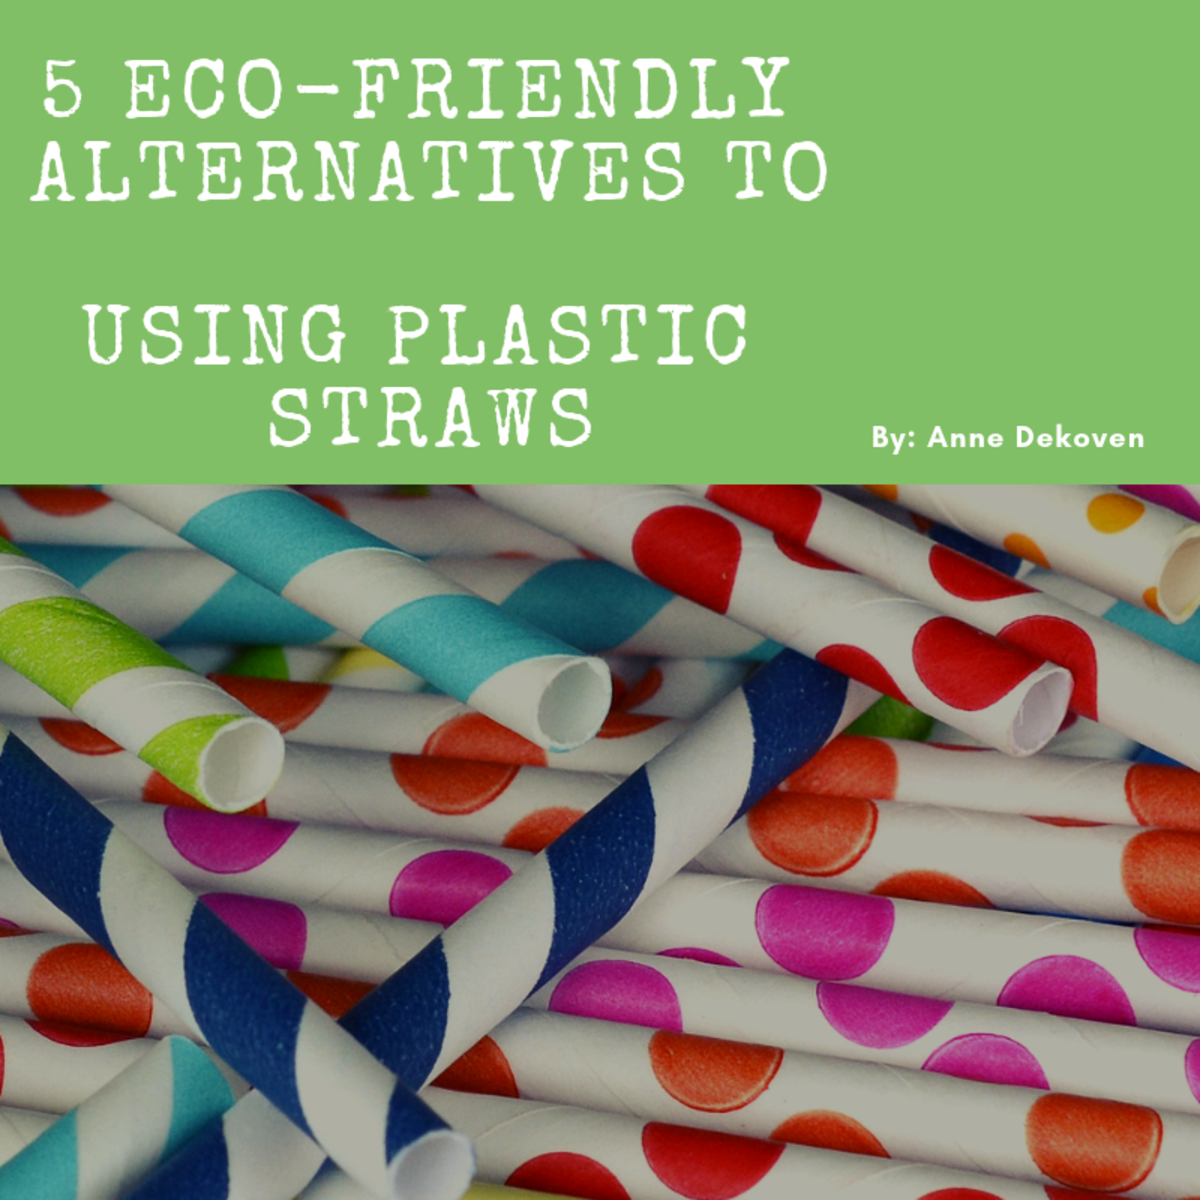 5 Eco-Friendly Alternatives to Using Plastic Straws